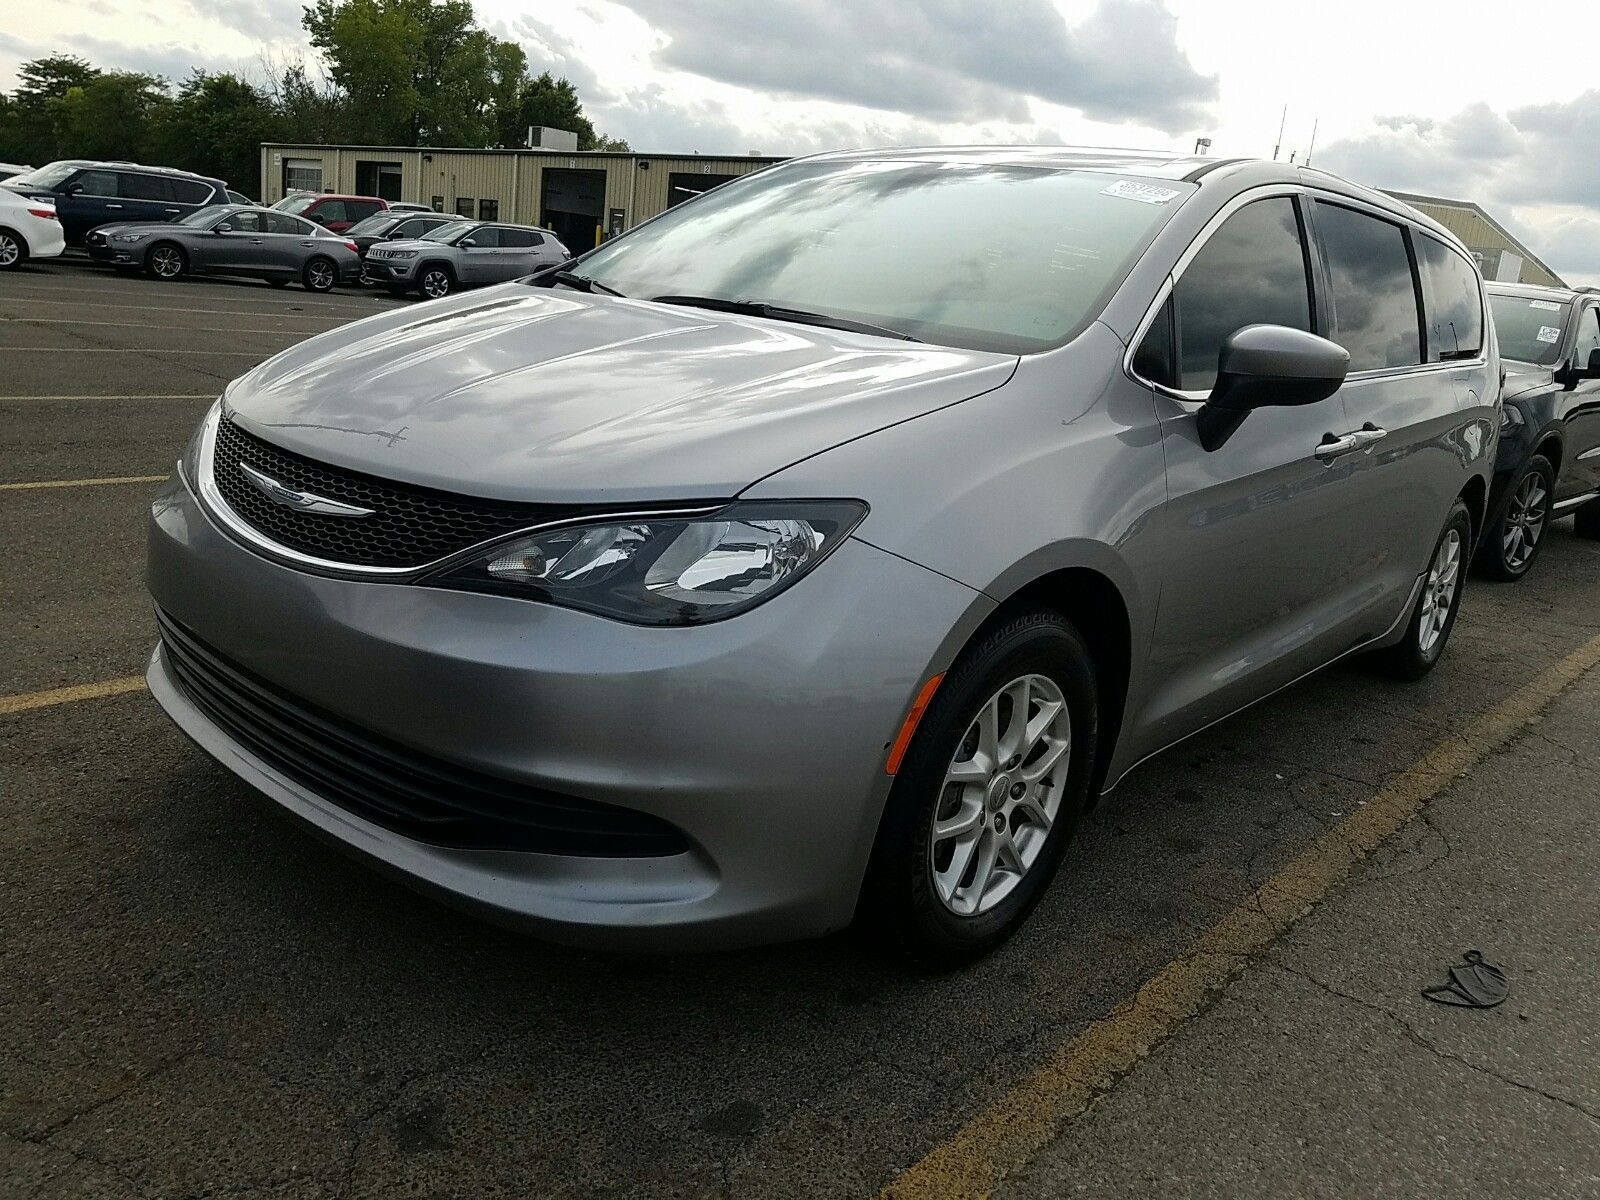 2018 Chrysler Pacifica 3.6. Lot 99913900930 Vin 2C4RC1CGXJR305526